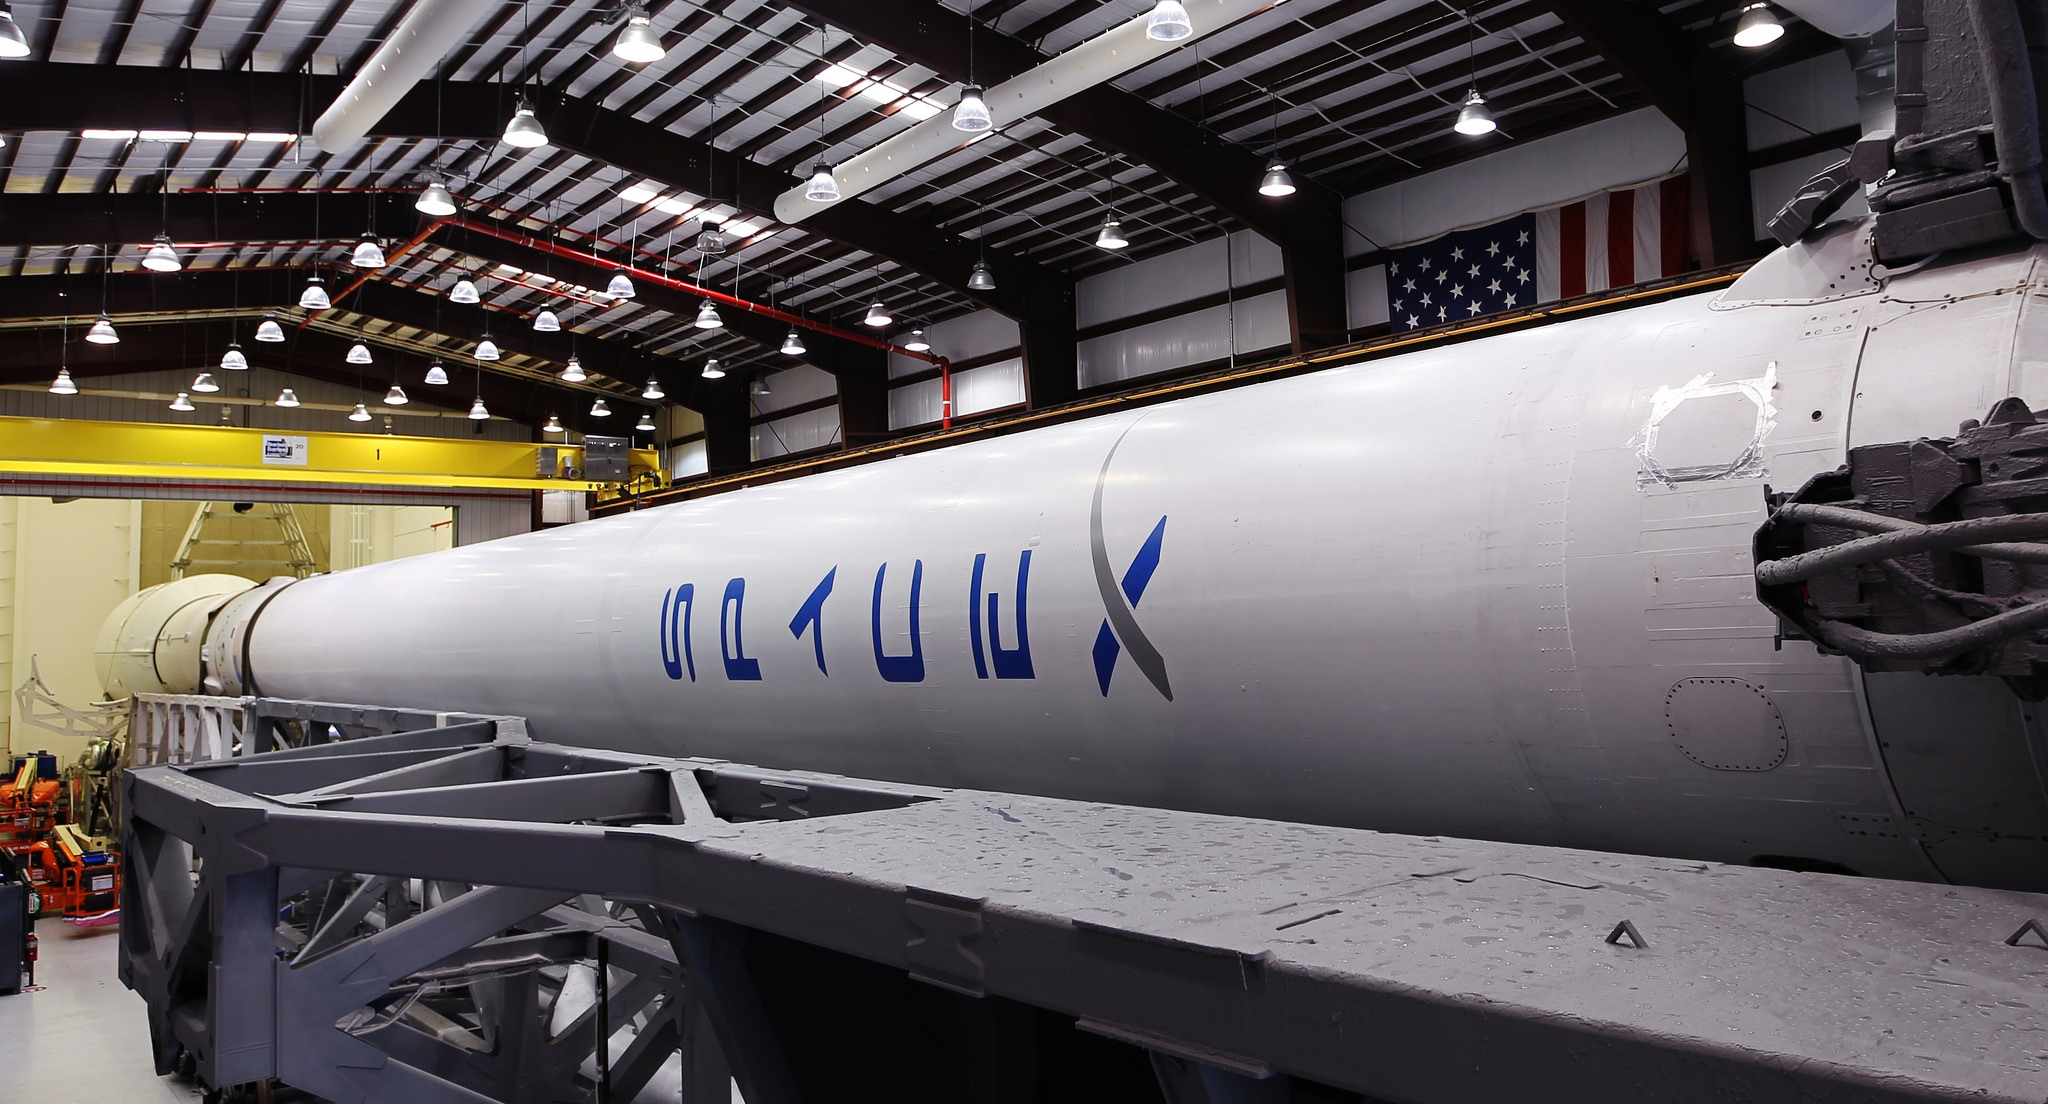 hangar spacex falcon 9 high resolution - photo #13